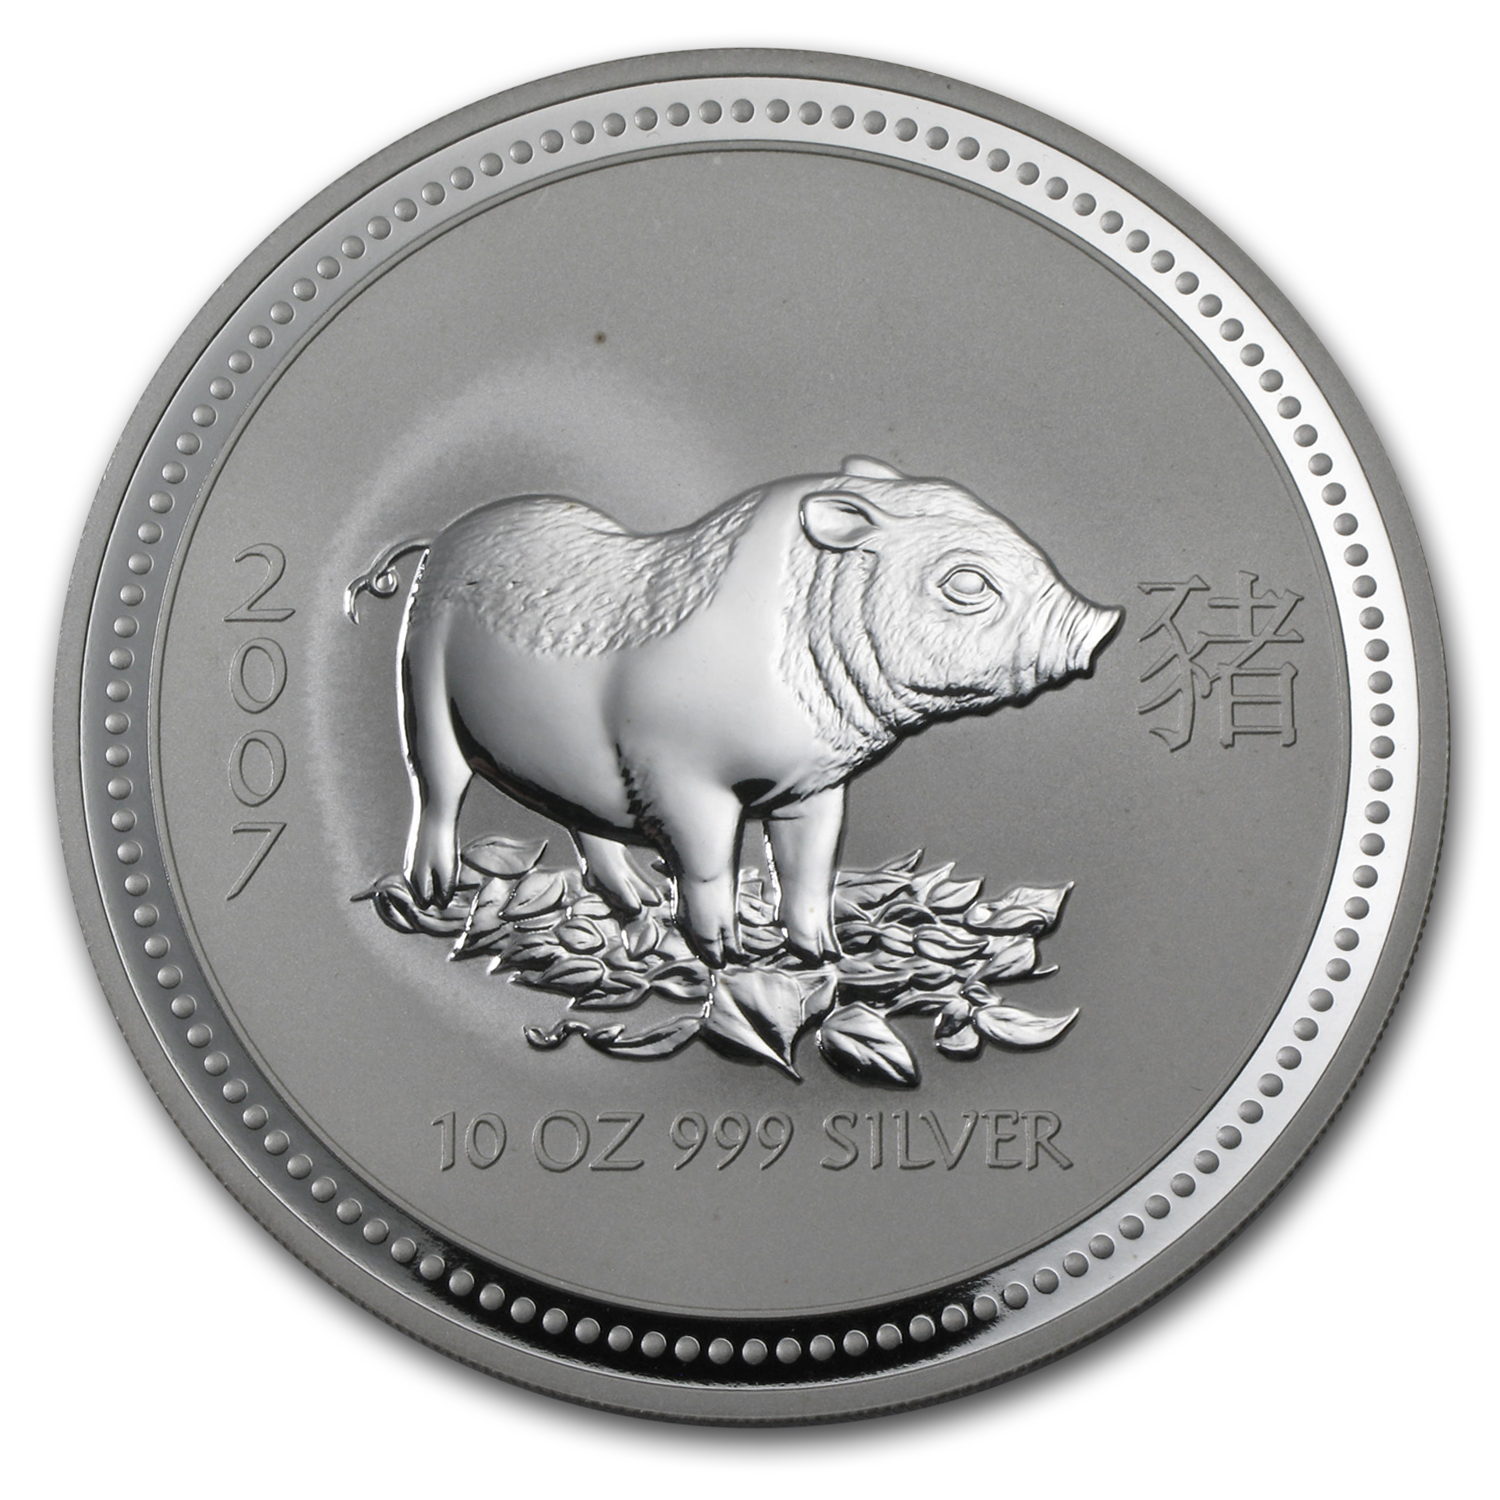 2007 Australia 10 oz Silver Year of the Pig BU